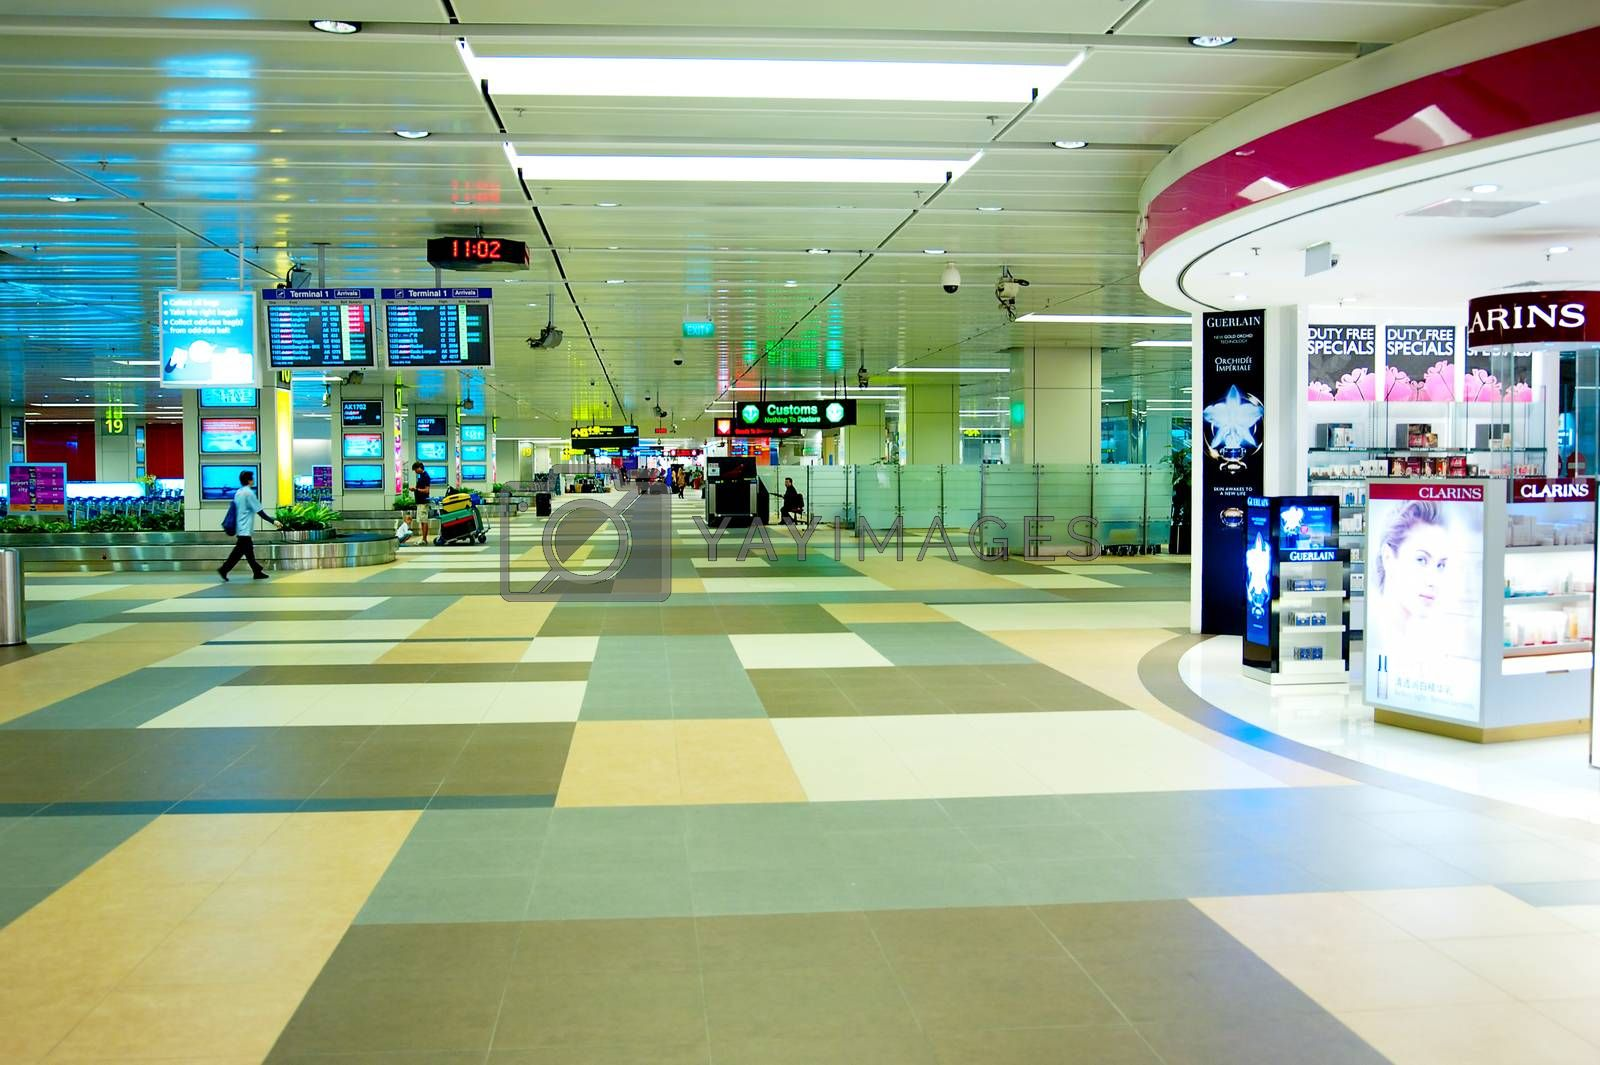 SINGAPORE - MARCH 05, 2013 : Modern interior of Changi International Airport in Singapore. Changi Airport serves more than 100 airlines operating 6,100 weekly flights